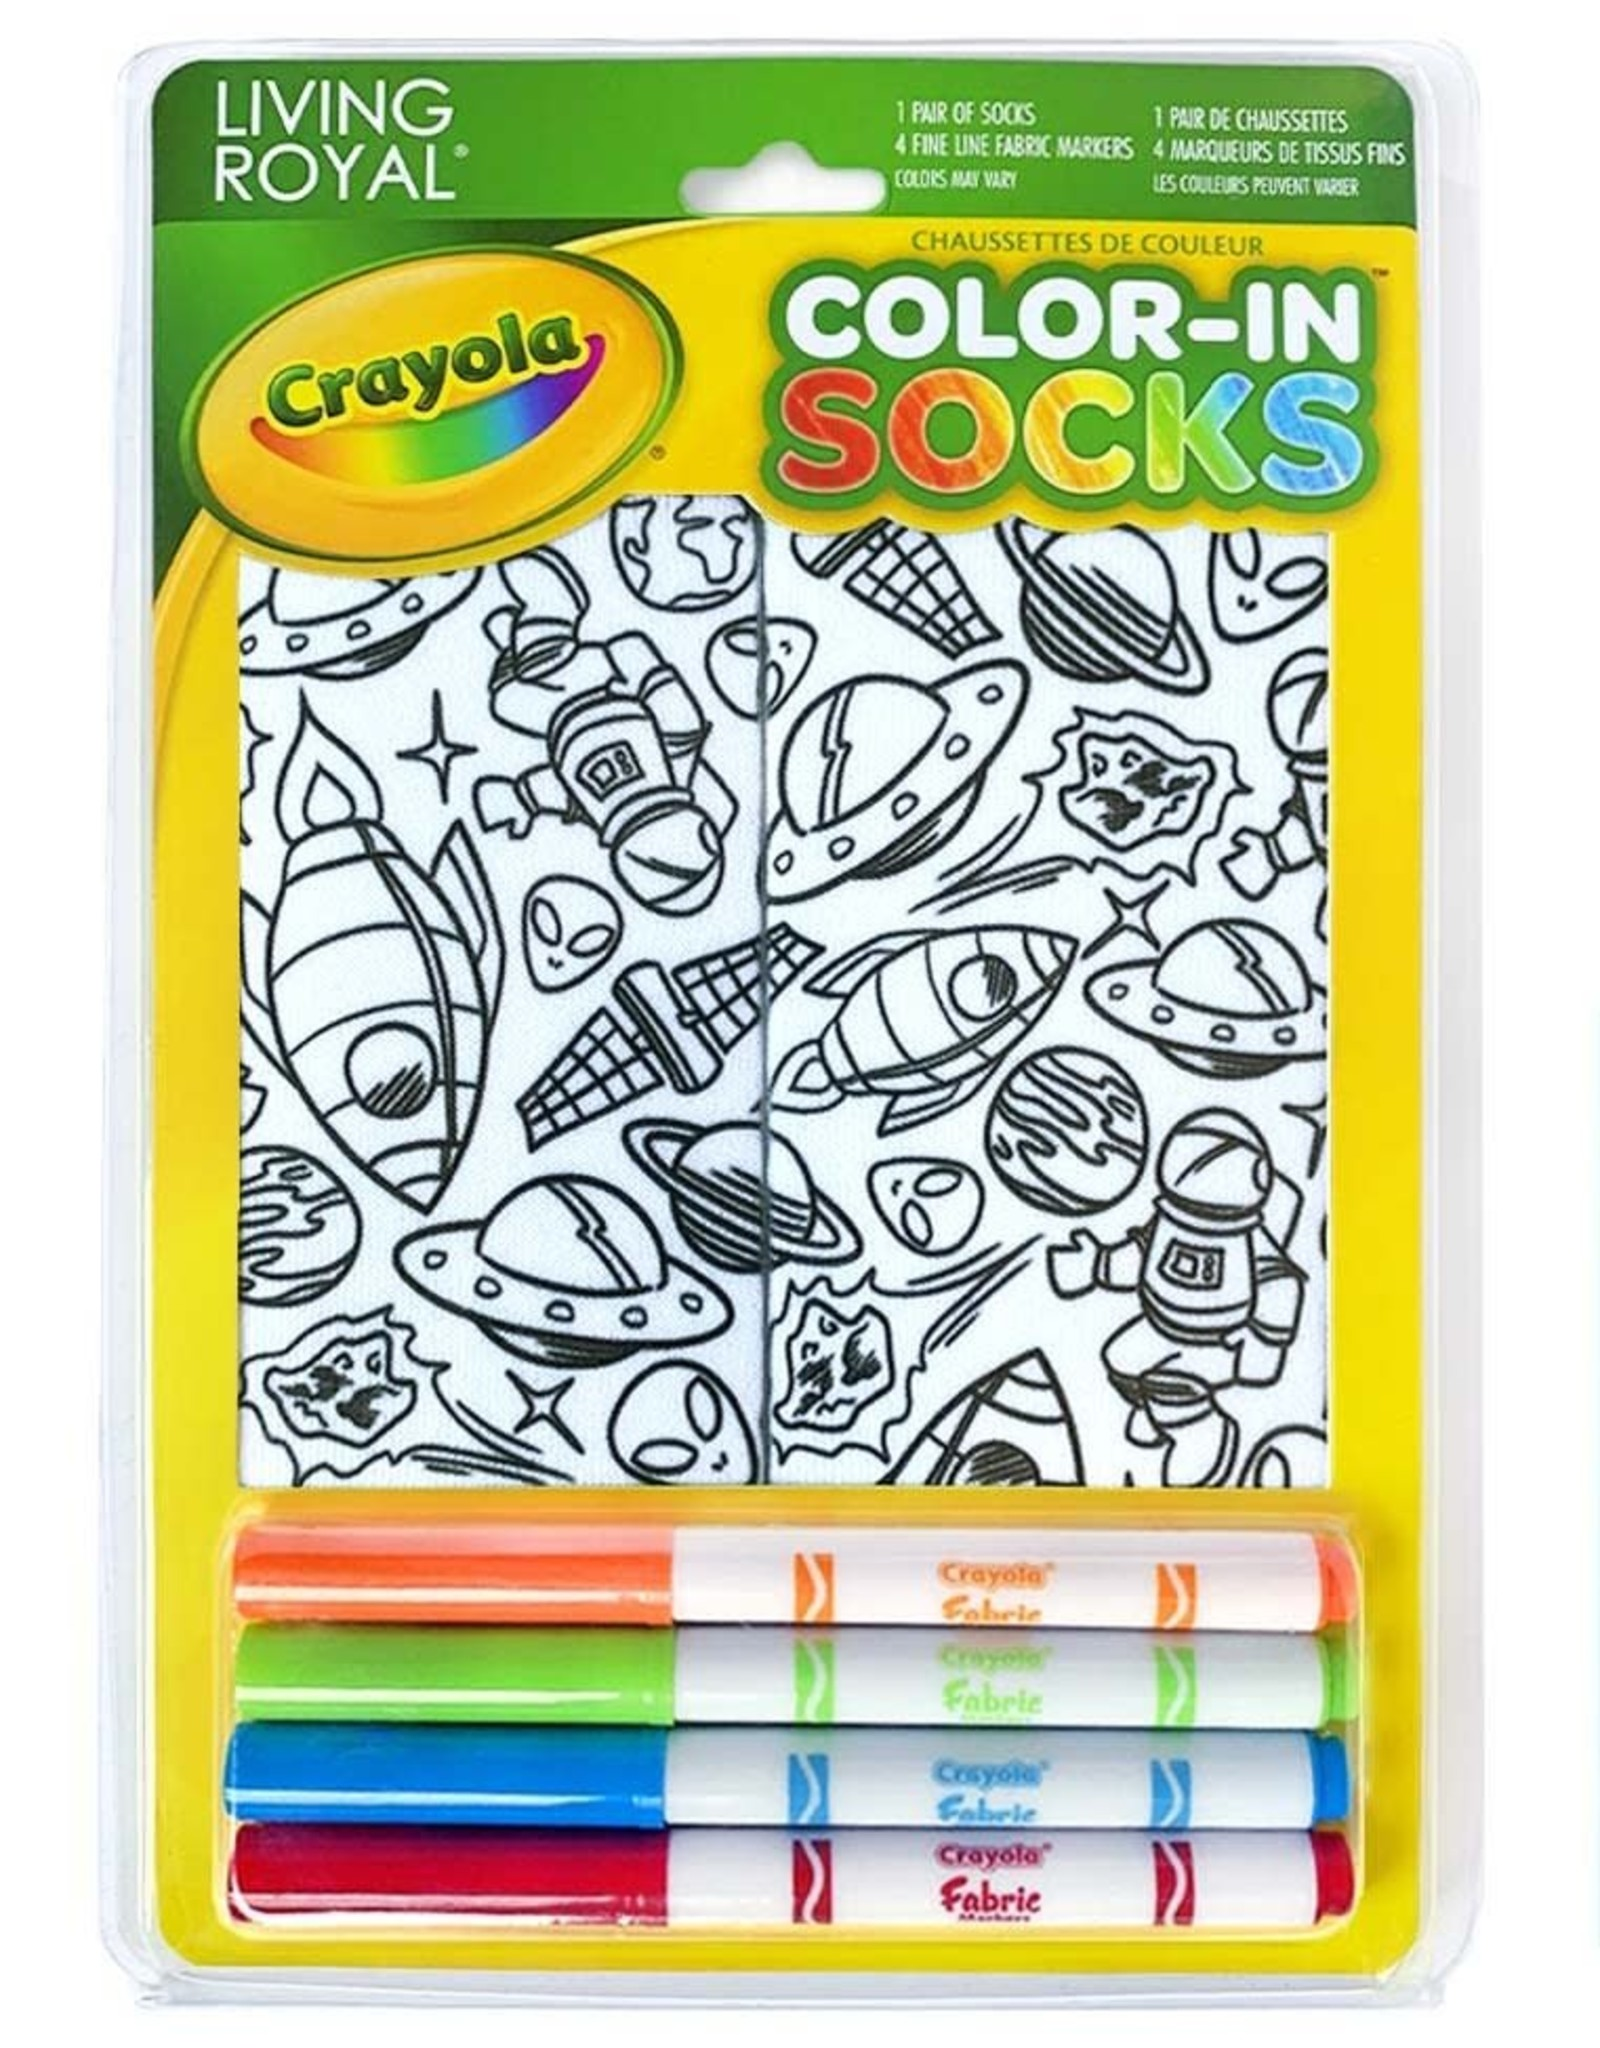 Crayola Color-In Socks: Out of Orbit